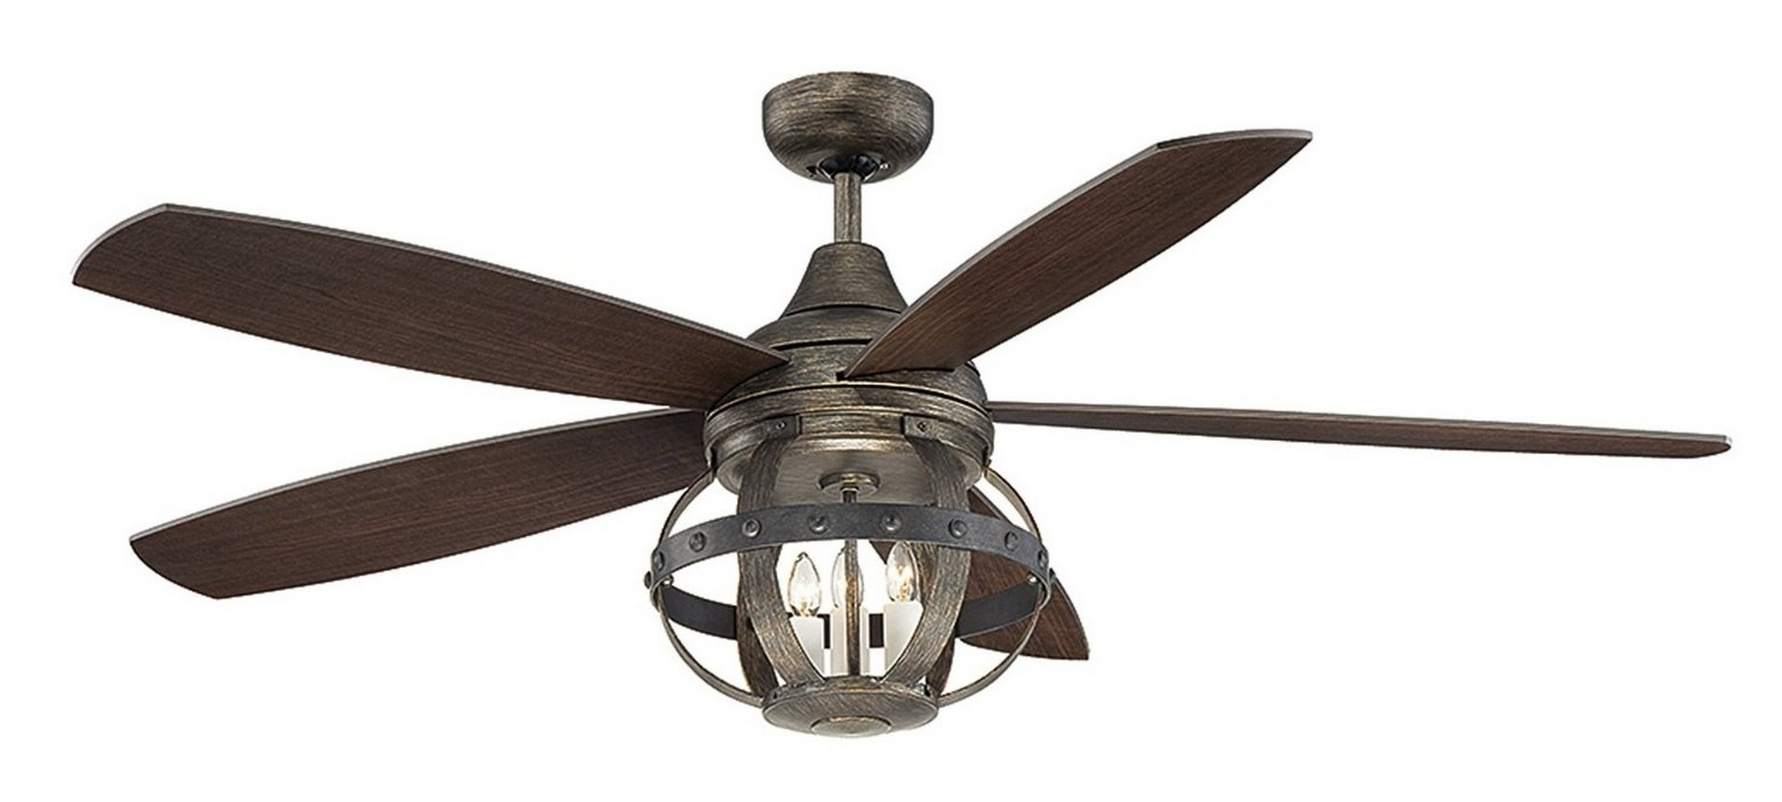 Current Industrial Outdoor Ceiling Fan With Light Industrial Outdoor Ceiling Pertaining To Industrial Outdoor Ceiling Fans With Light (Gallery 2 of 20)